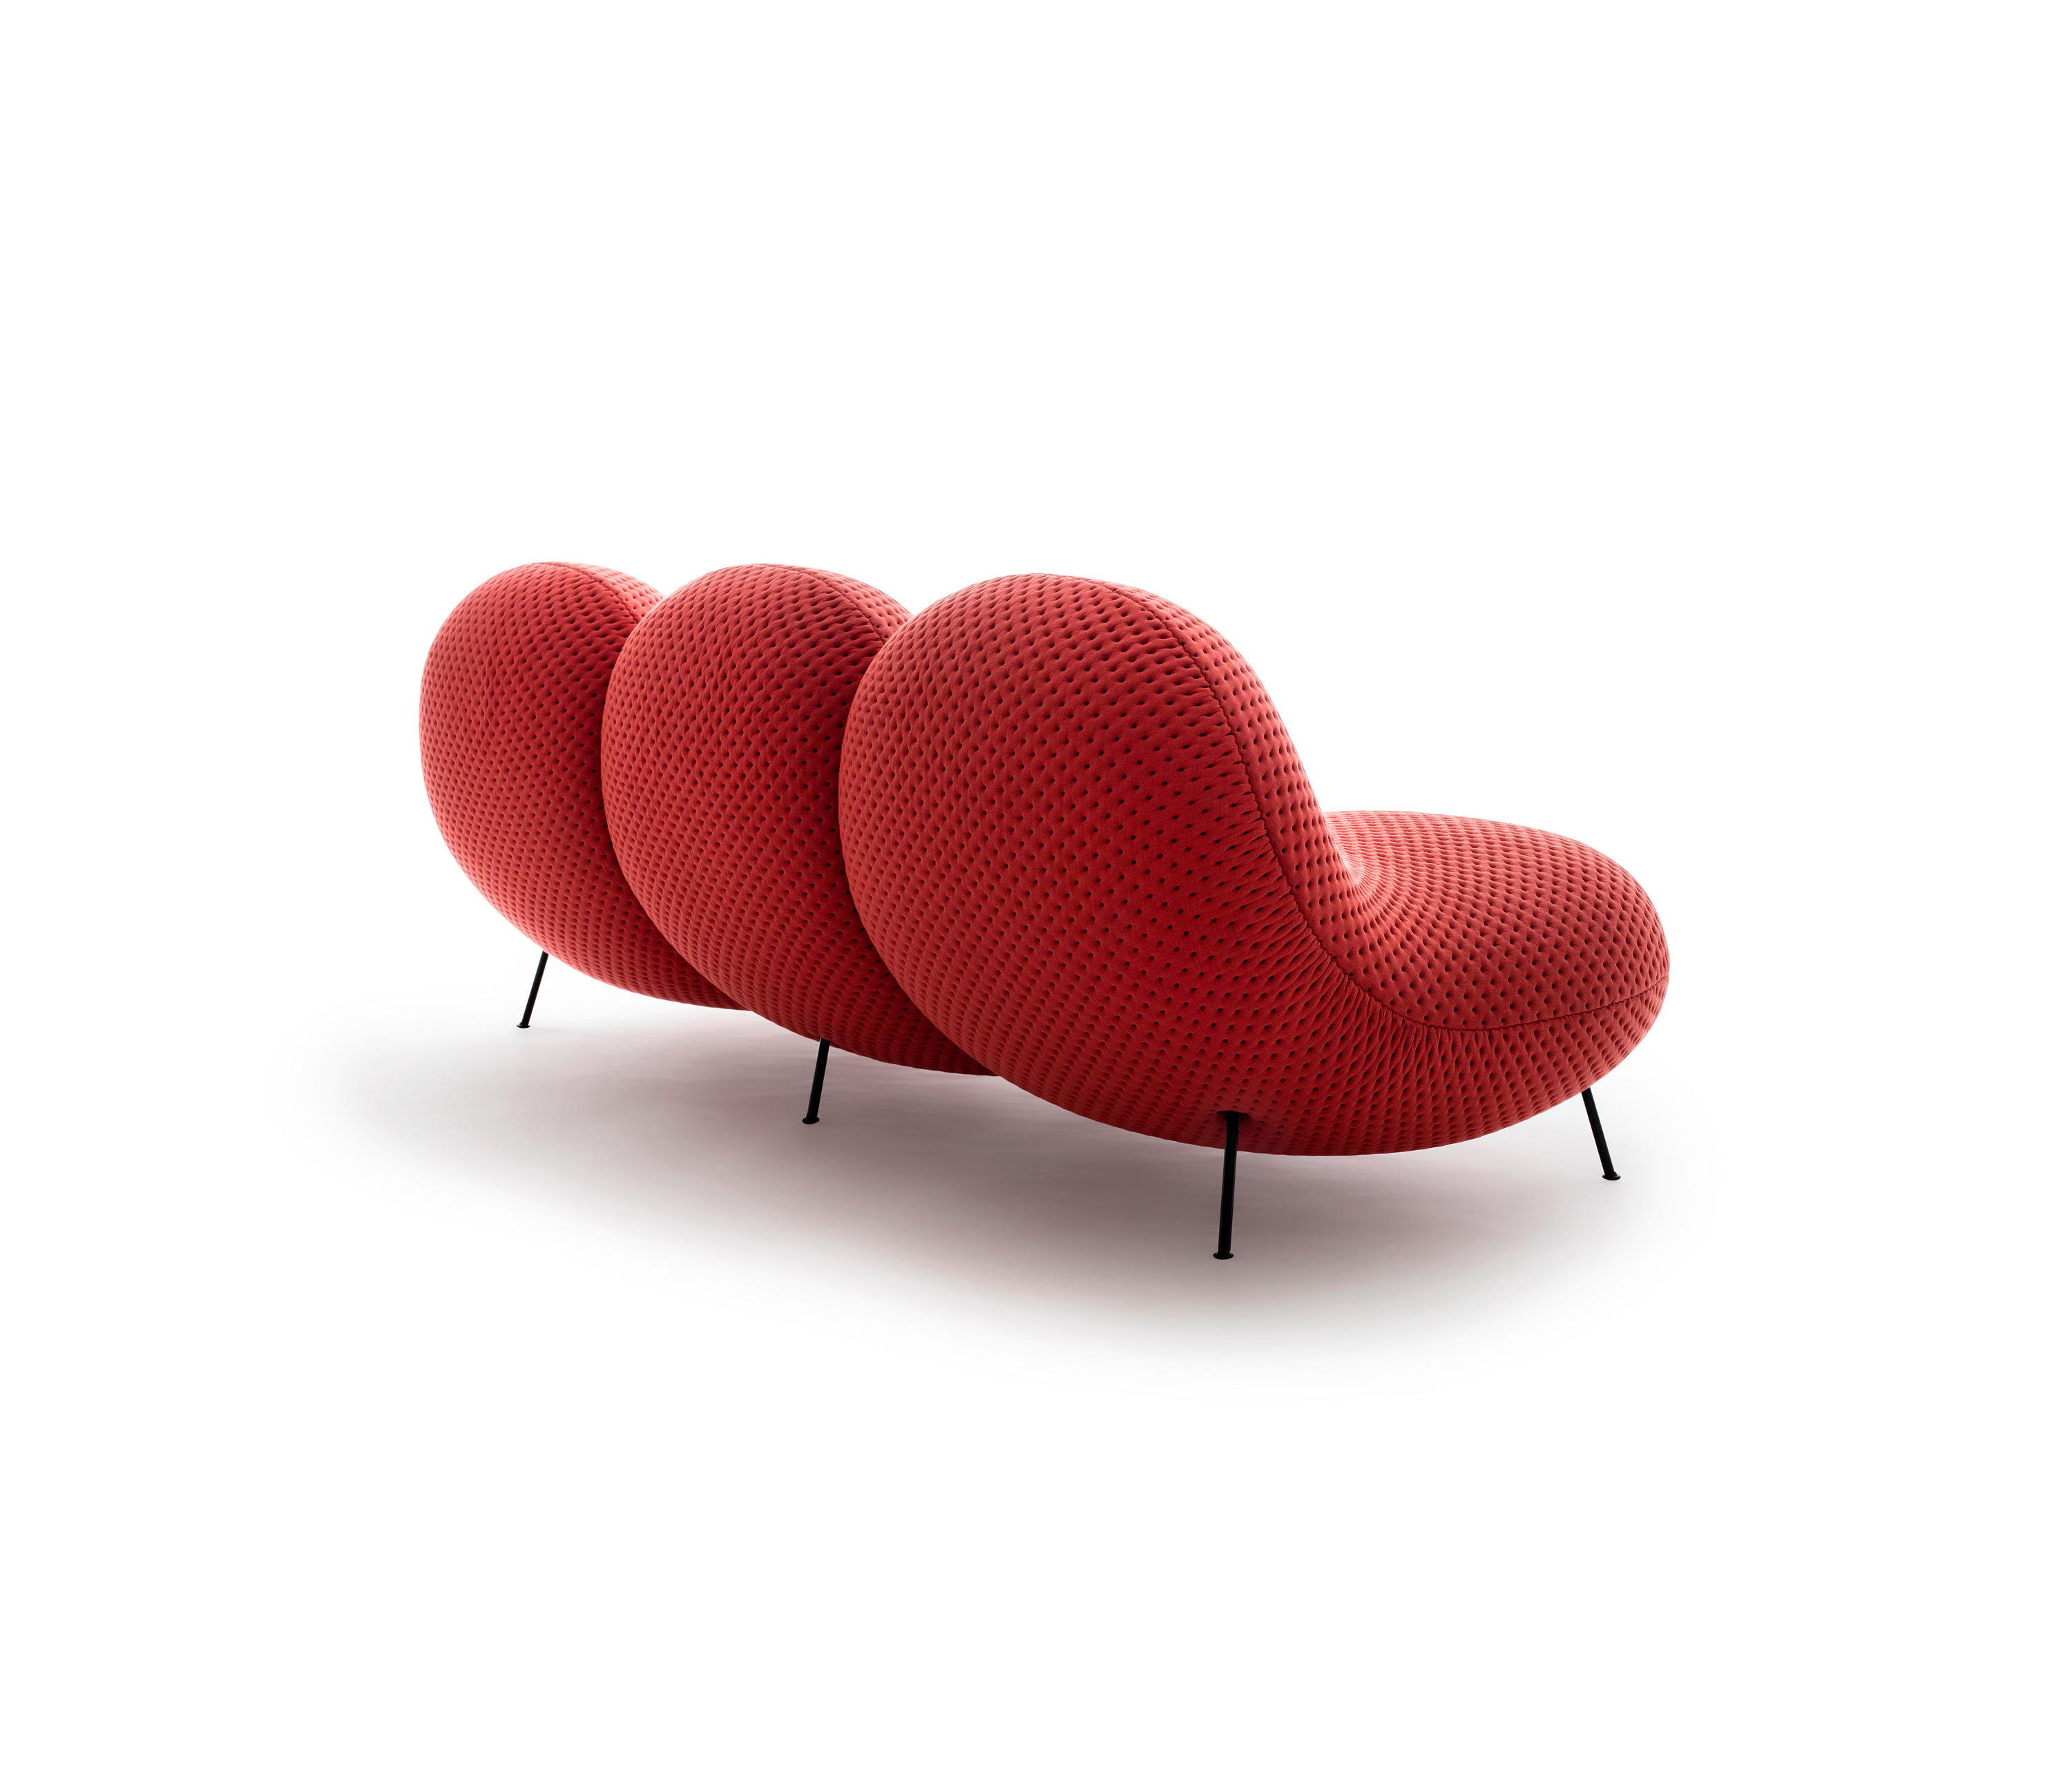 BABABA 3-SEATER SOFA - Sofas from jotjot   Architonic